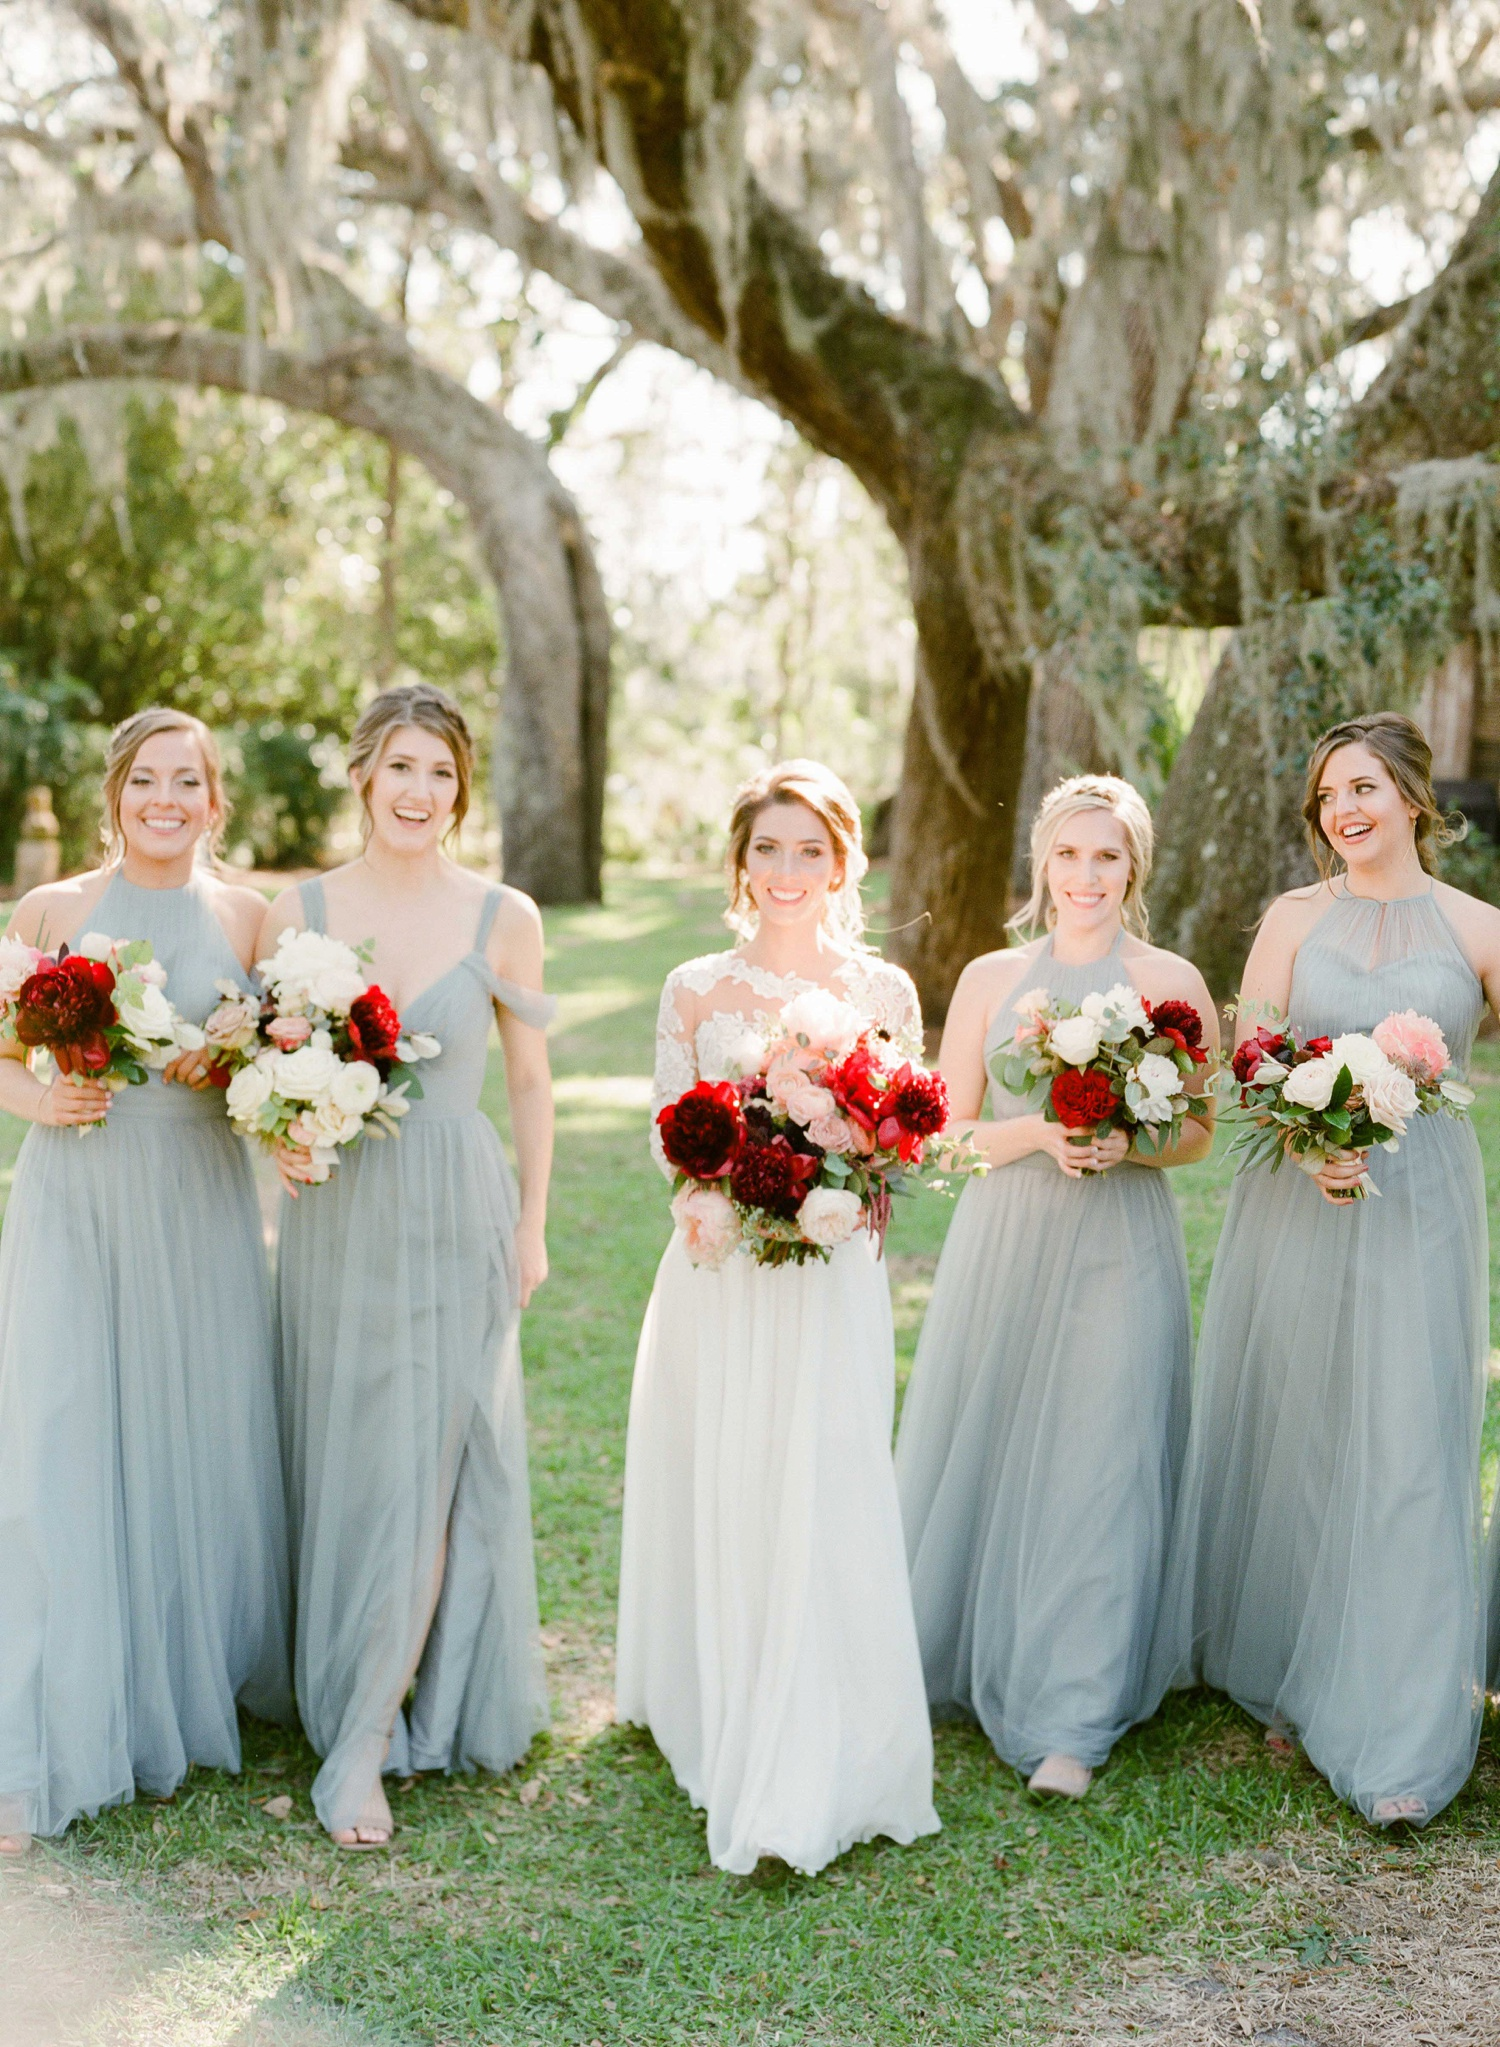 St-Simons-Island-Wedding-Photographer_0022.jpg